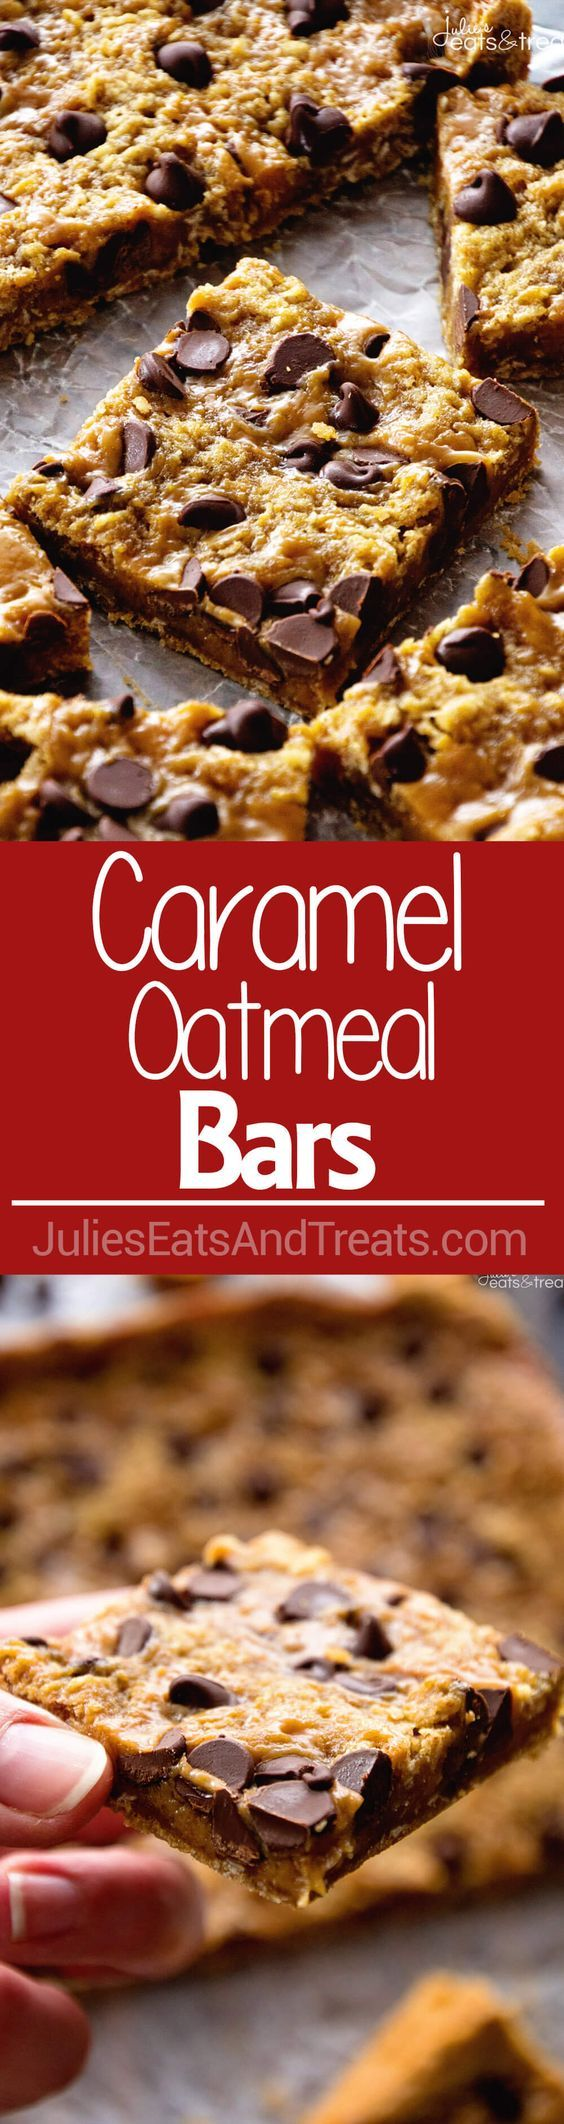 Caramel Oatmeal Bars ~ with a delicious, ooey, gooey layer of caramel and sweet chocolate chips for a quick, easy dessert!